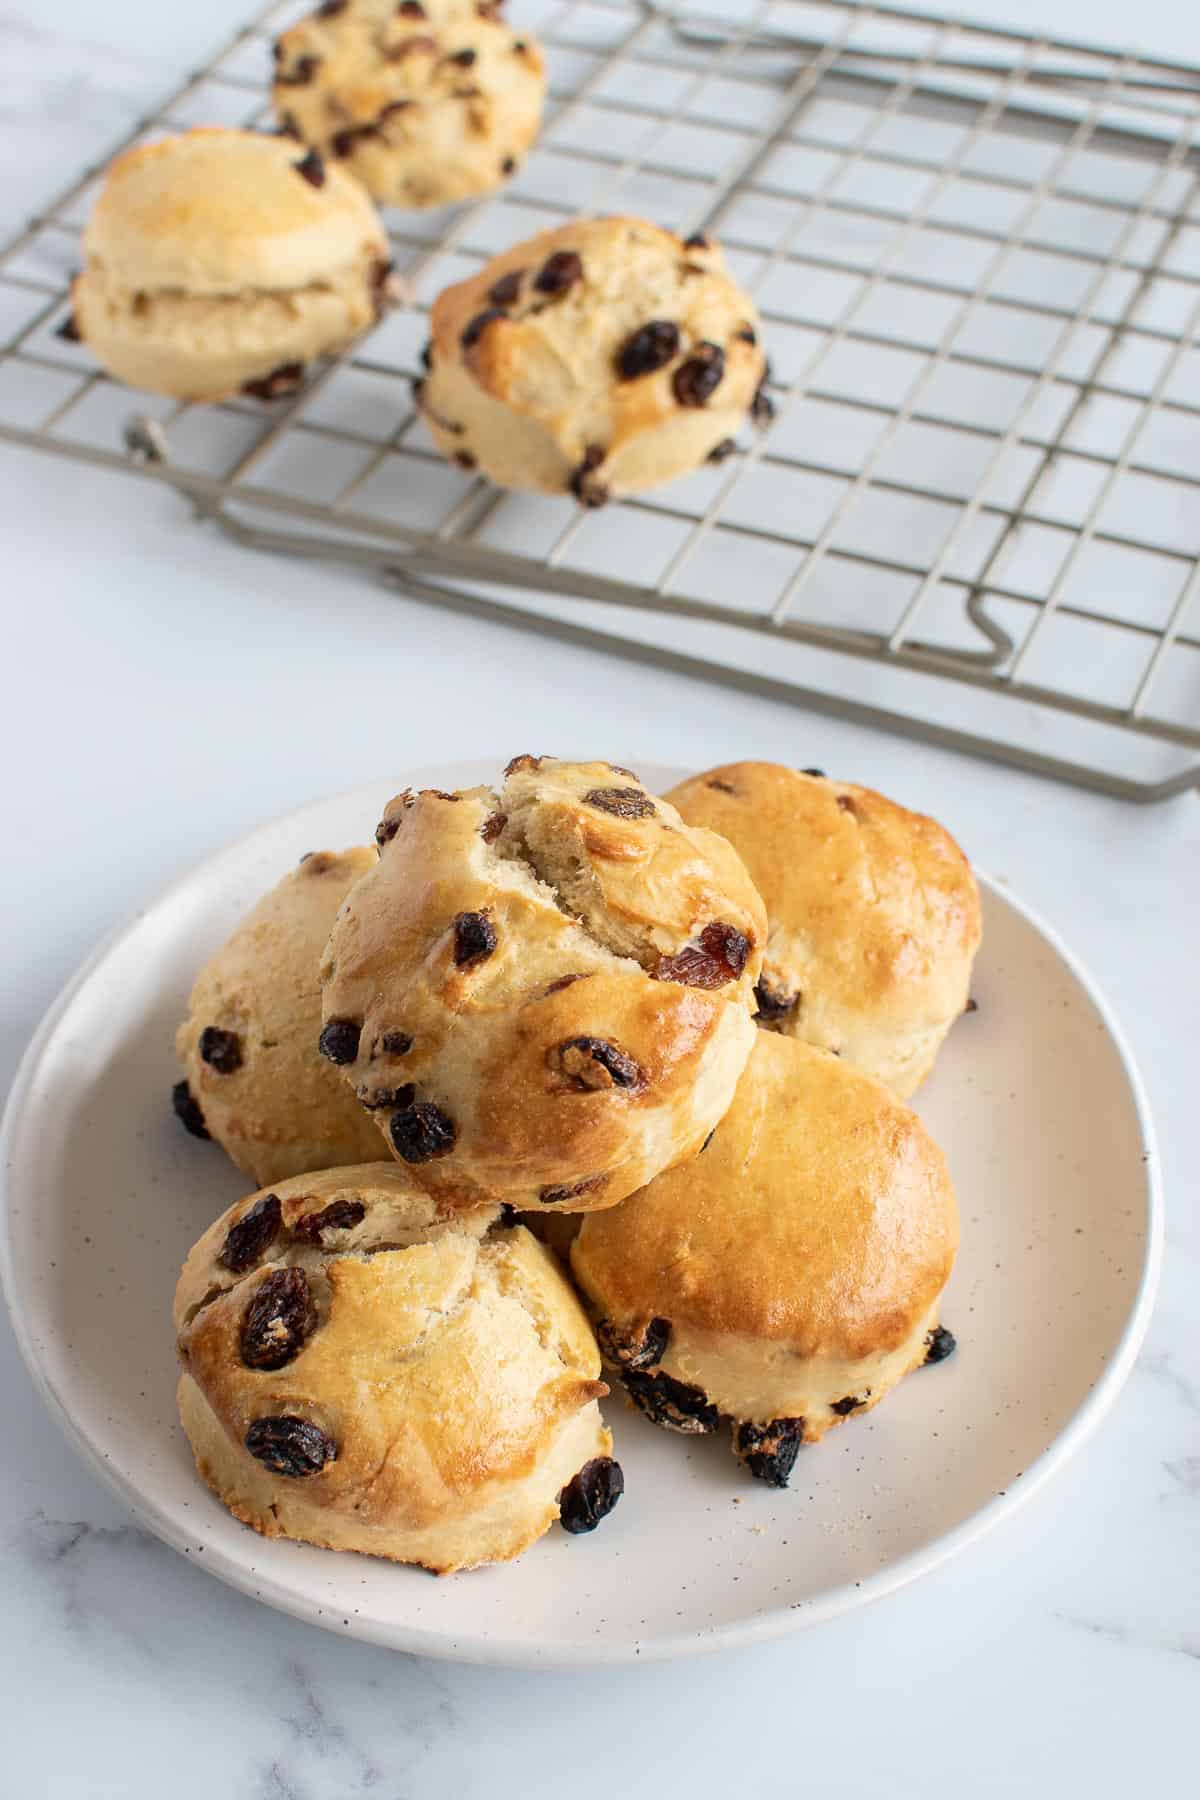 A plate of scones, with more scones resting on a cooling rack in the background.